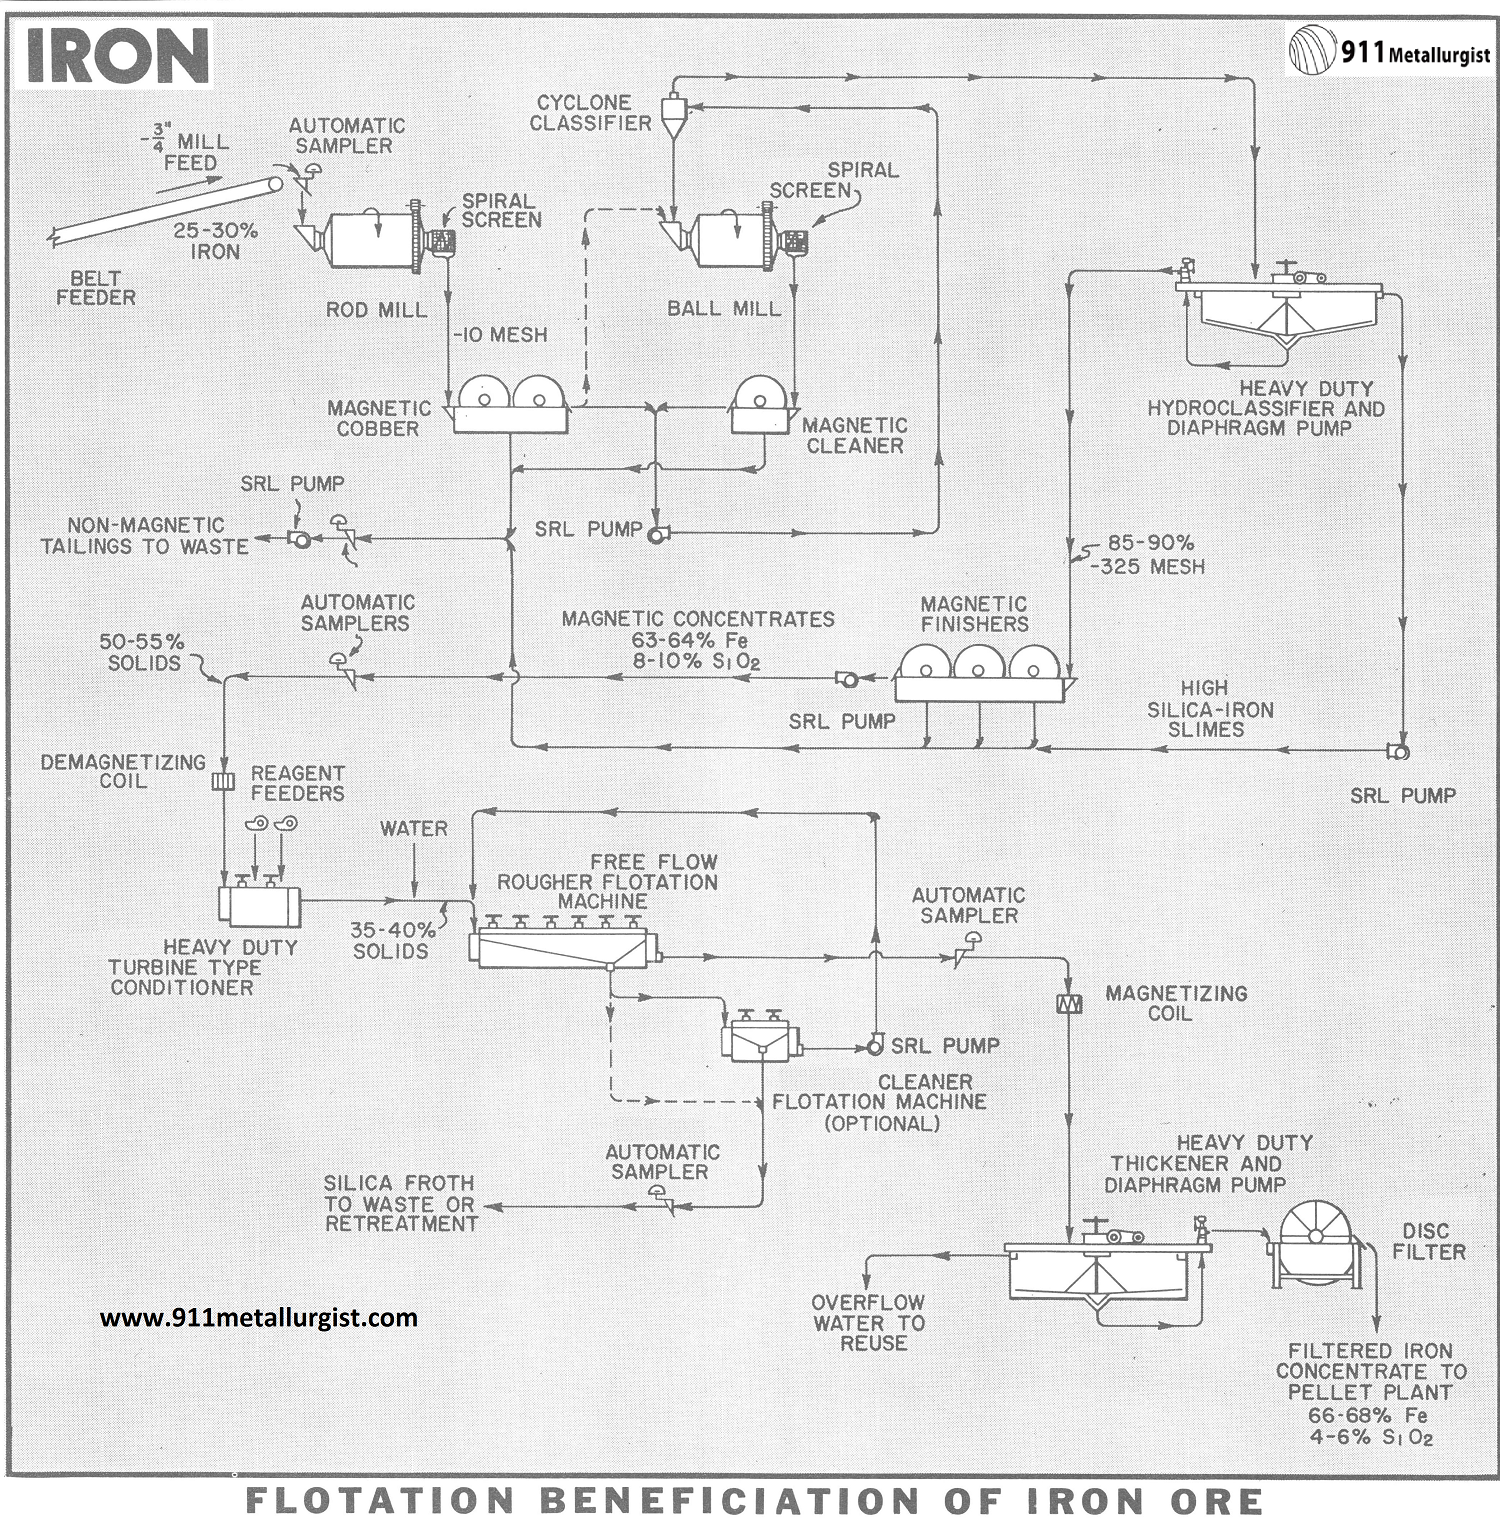 Flotation Beneficiation of Iron Ore